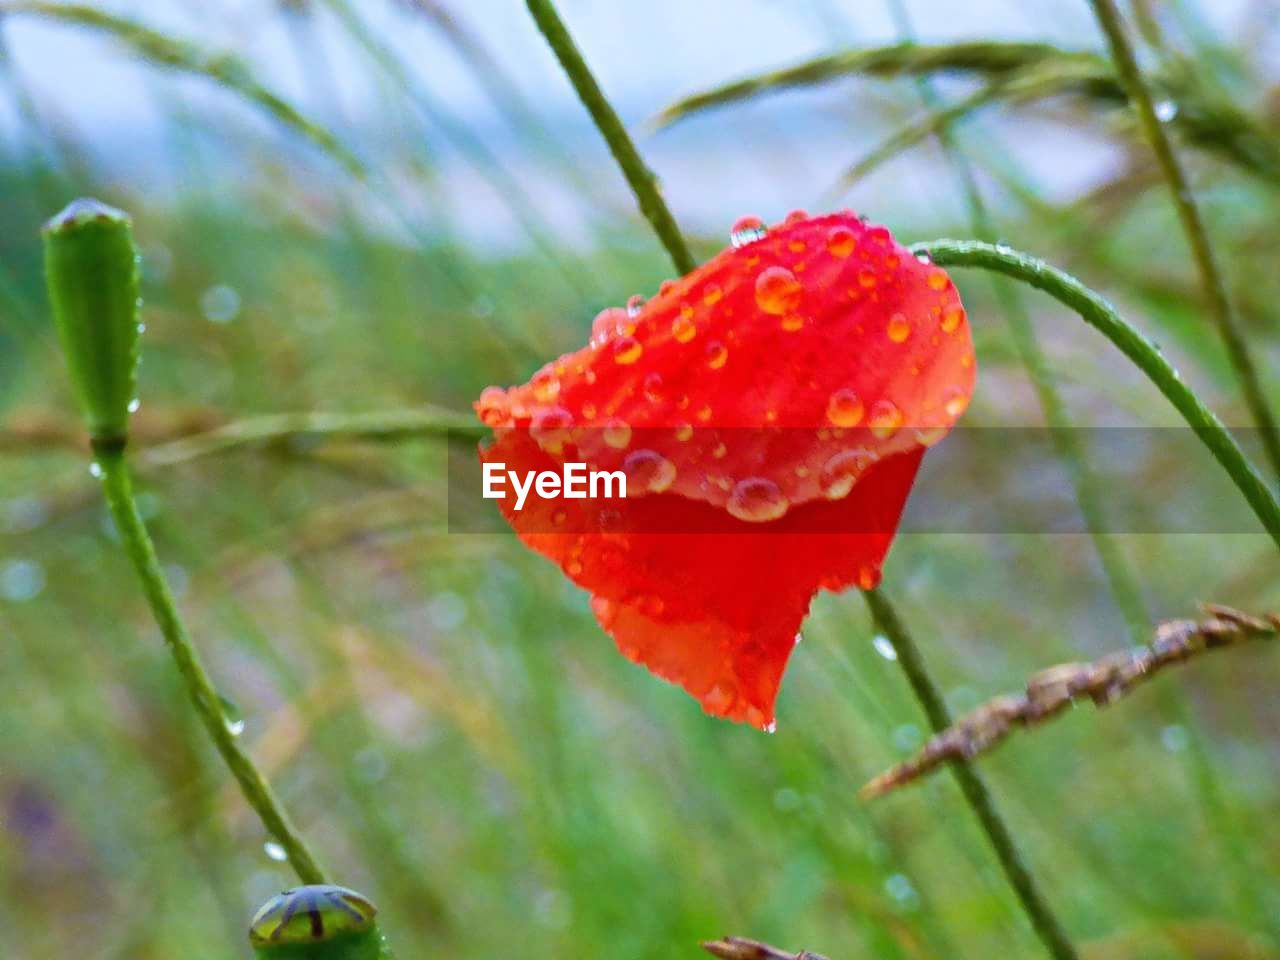 growth, nature, beauty in nature, red, plant, drop, day, close-up, no people, outdoors, freshness, leaf, cold temperature, focus on foreground, fragility, green color, water